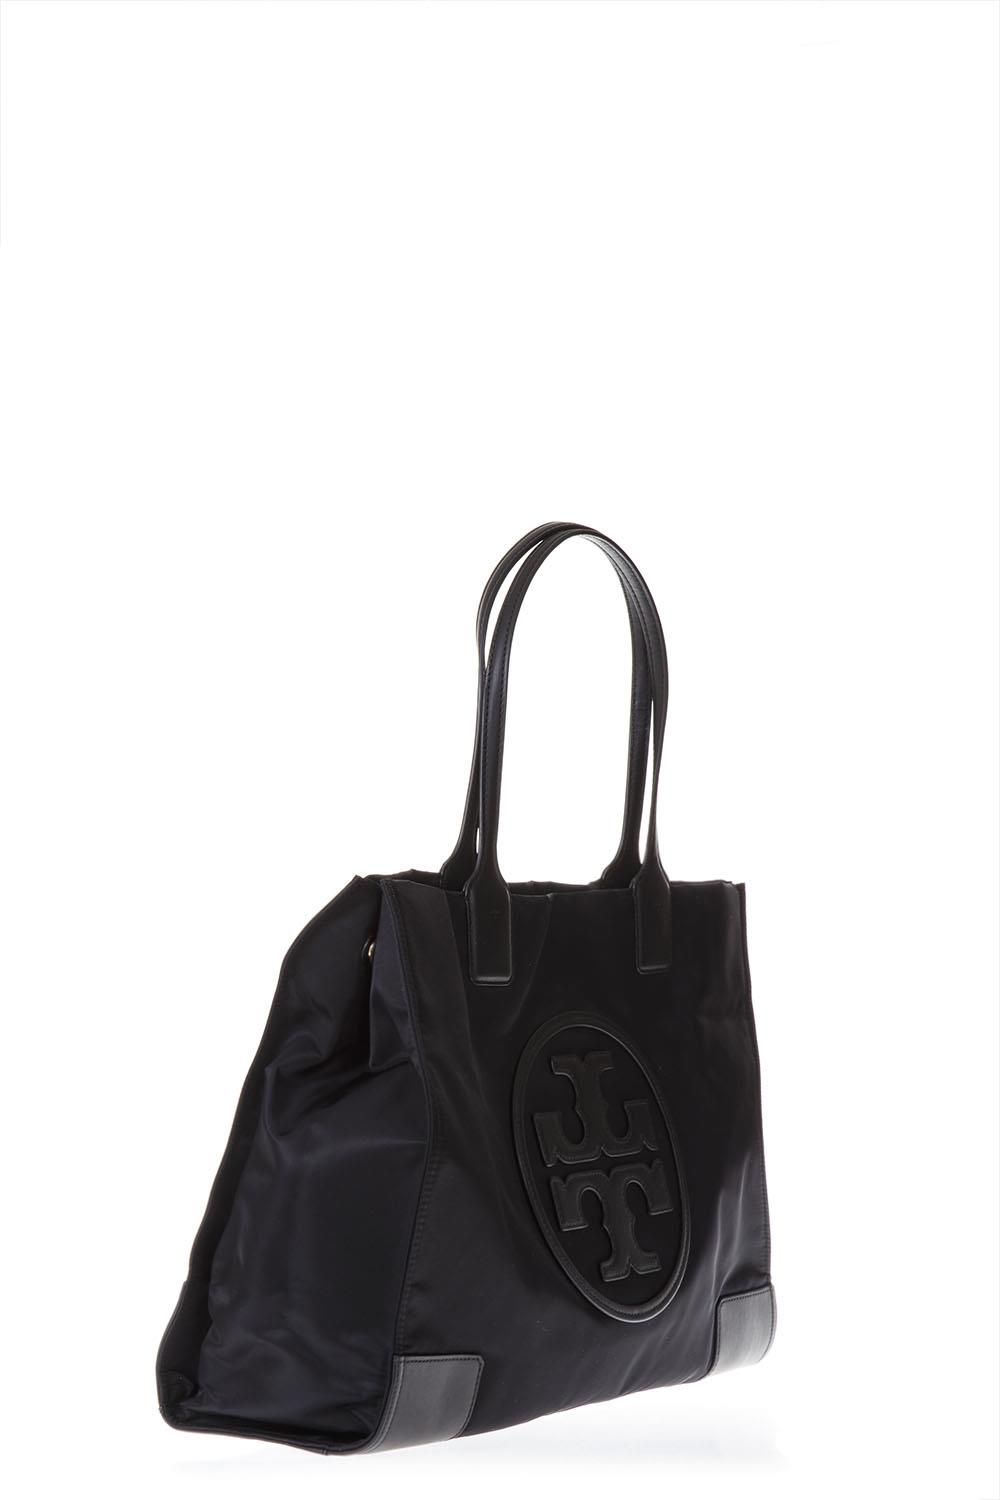 08f64a9ed13 ELLA TOTE BLACK BAG IN LEATHER WITH LOGO SS 2019 - TORY BURCH ...